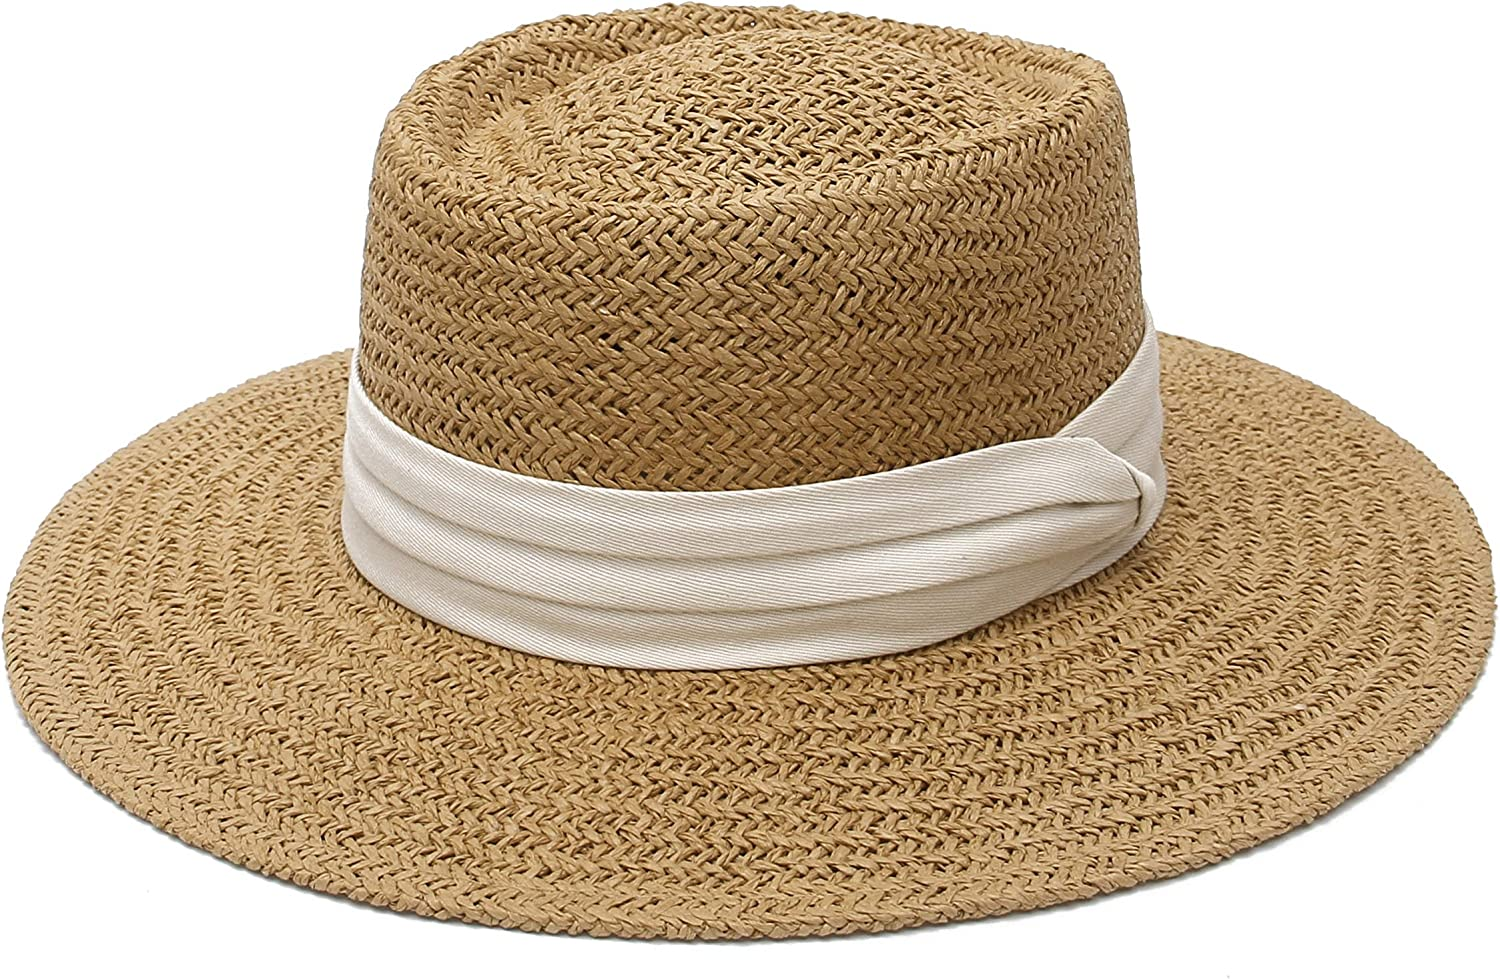 EOZY Womens Vintage Straw Boater Hat Wide Brim Fedora Sun Hat Church Wedding Hat with Band